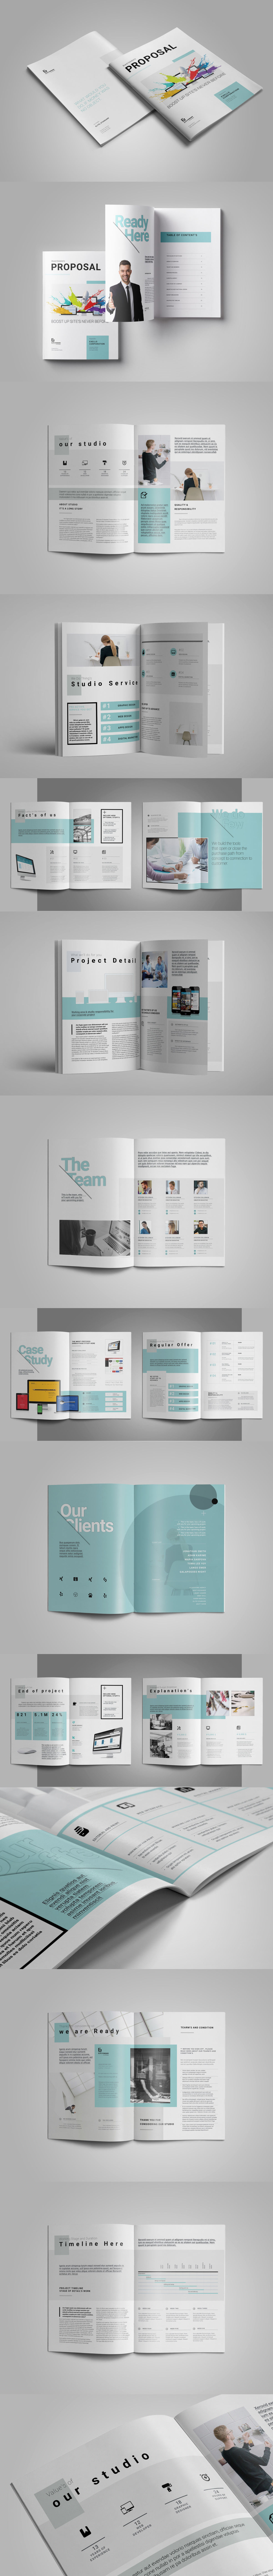 Clean Proposal Template InDesign INDD - 24 Pages, Two different ...